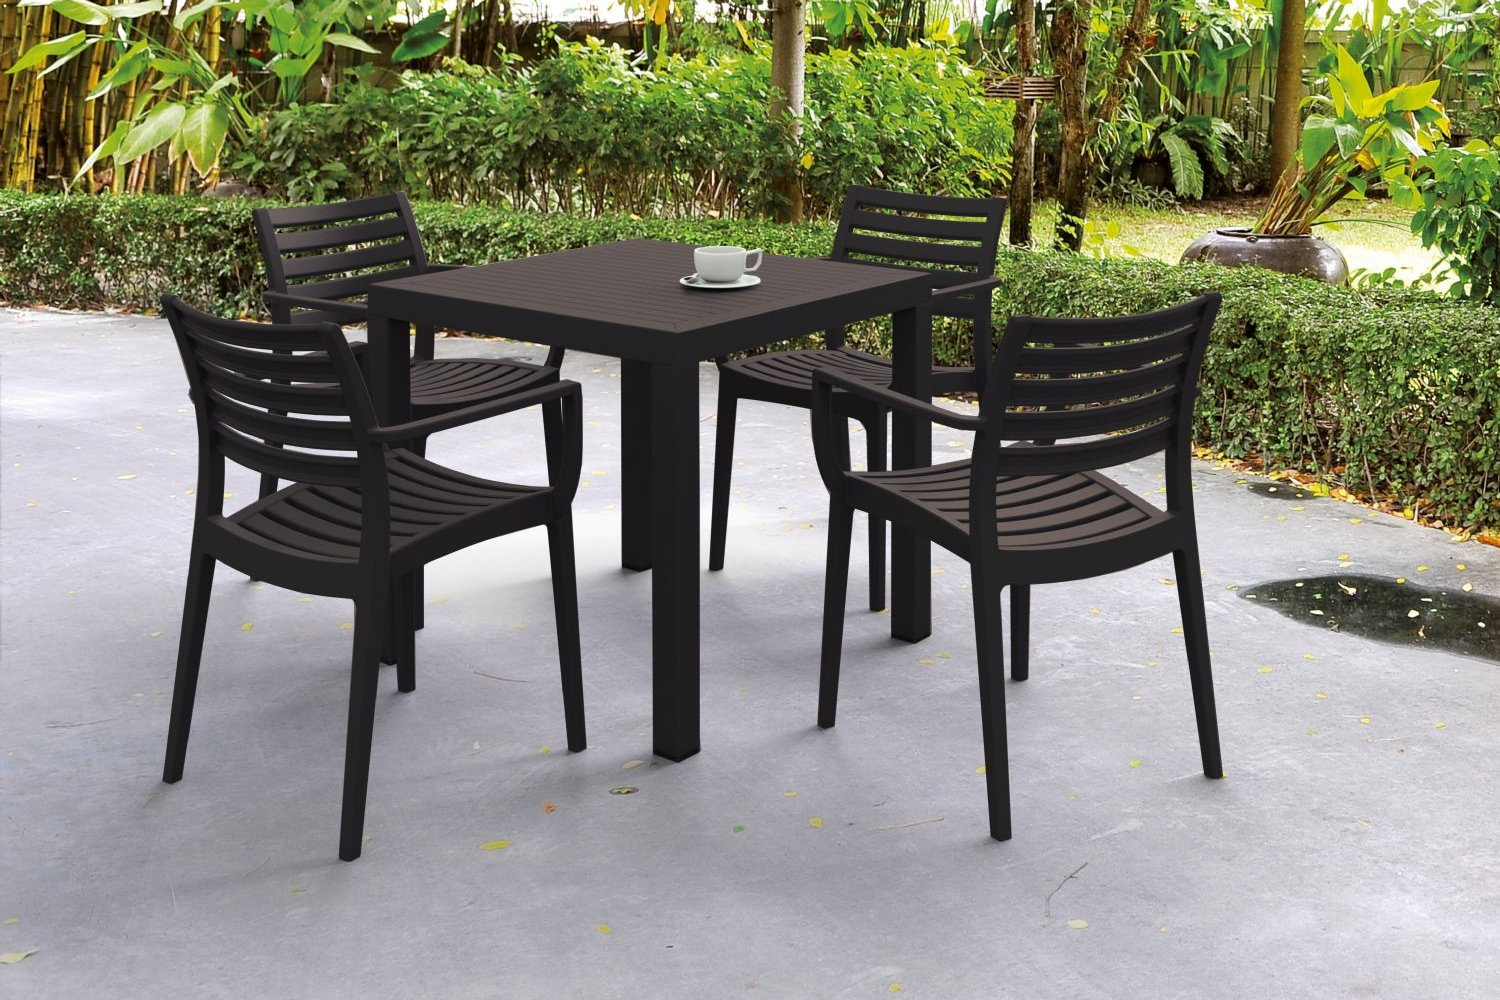 Artemis Resin Square Outdoor Dining Set 5 Piece with Arm Chairs Brown ISP1642S-BRW - 2